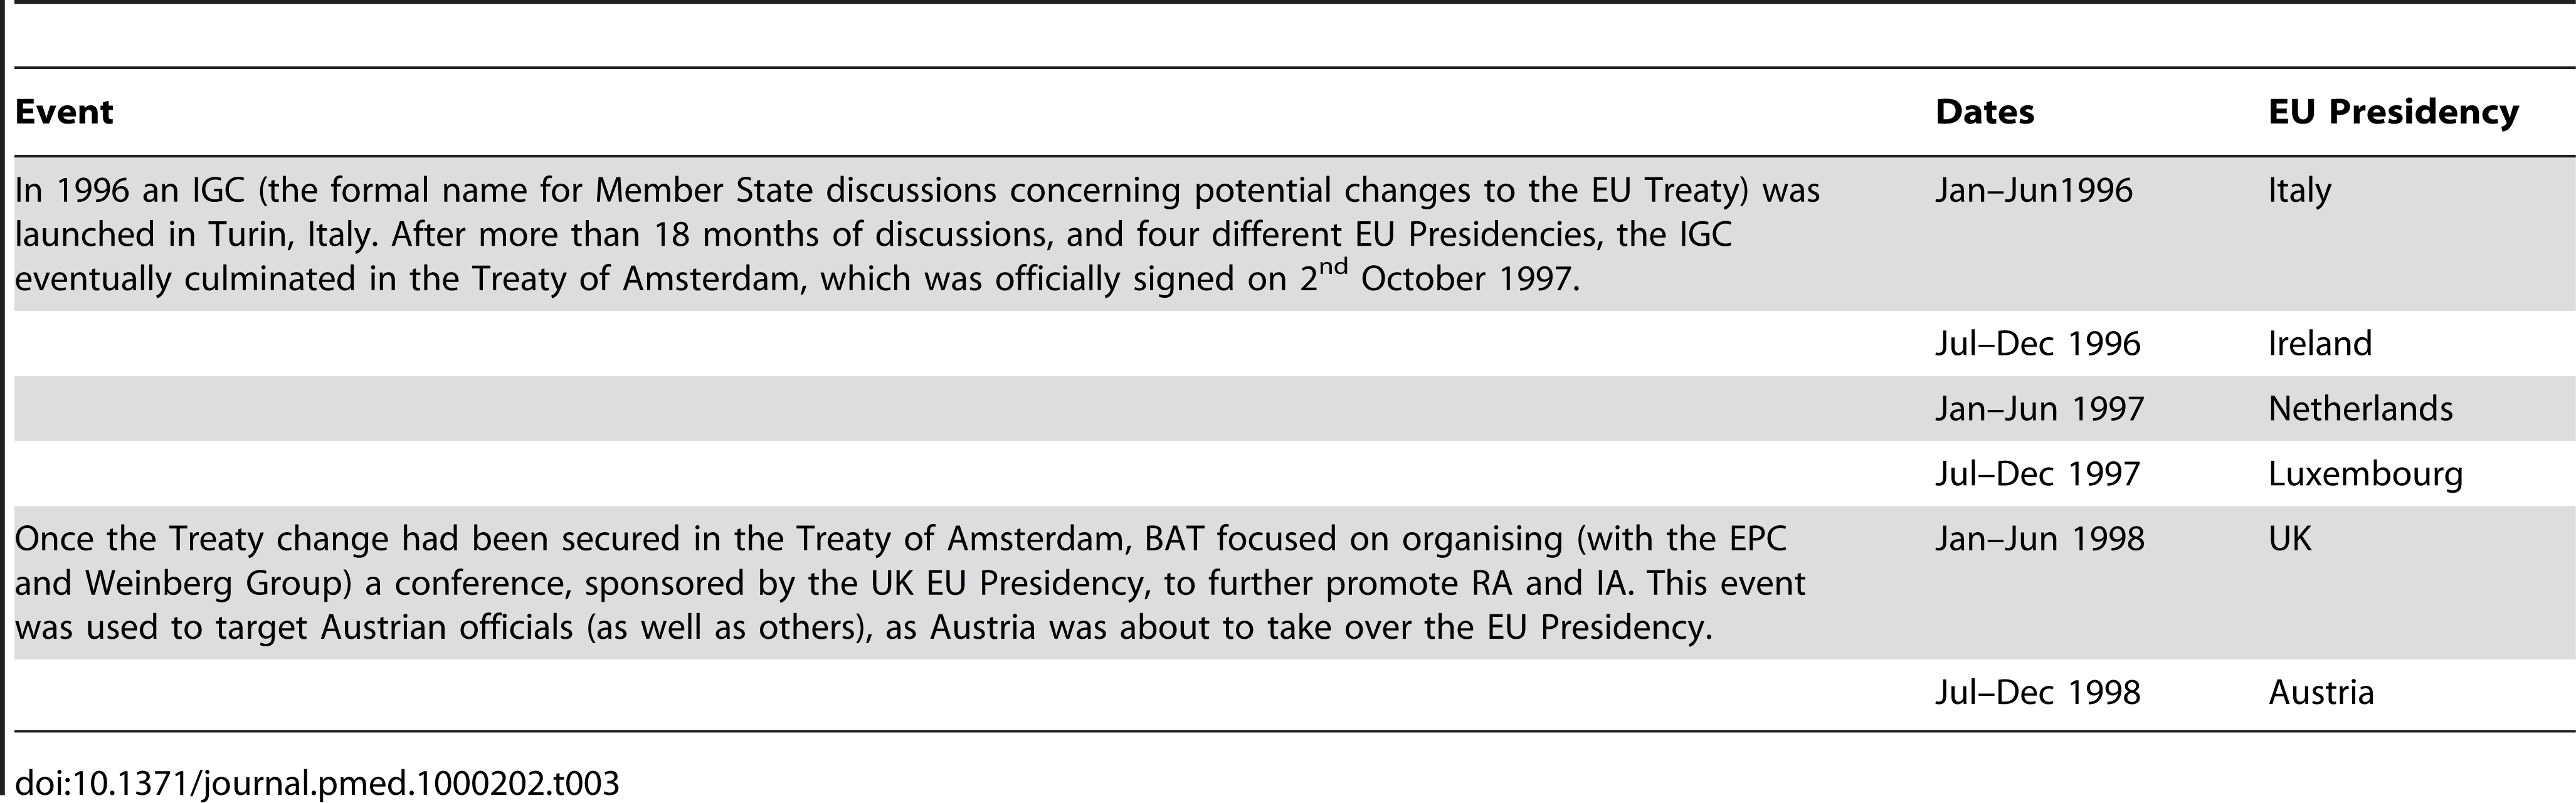 Timeline of six-month rotating EU Presidencies during and immediately after the 1996–1997 Inter-governmental Conference.